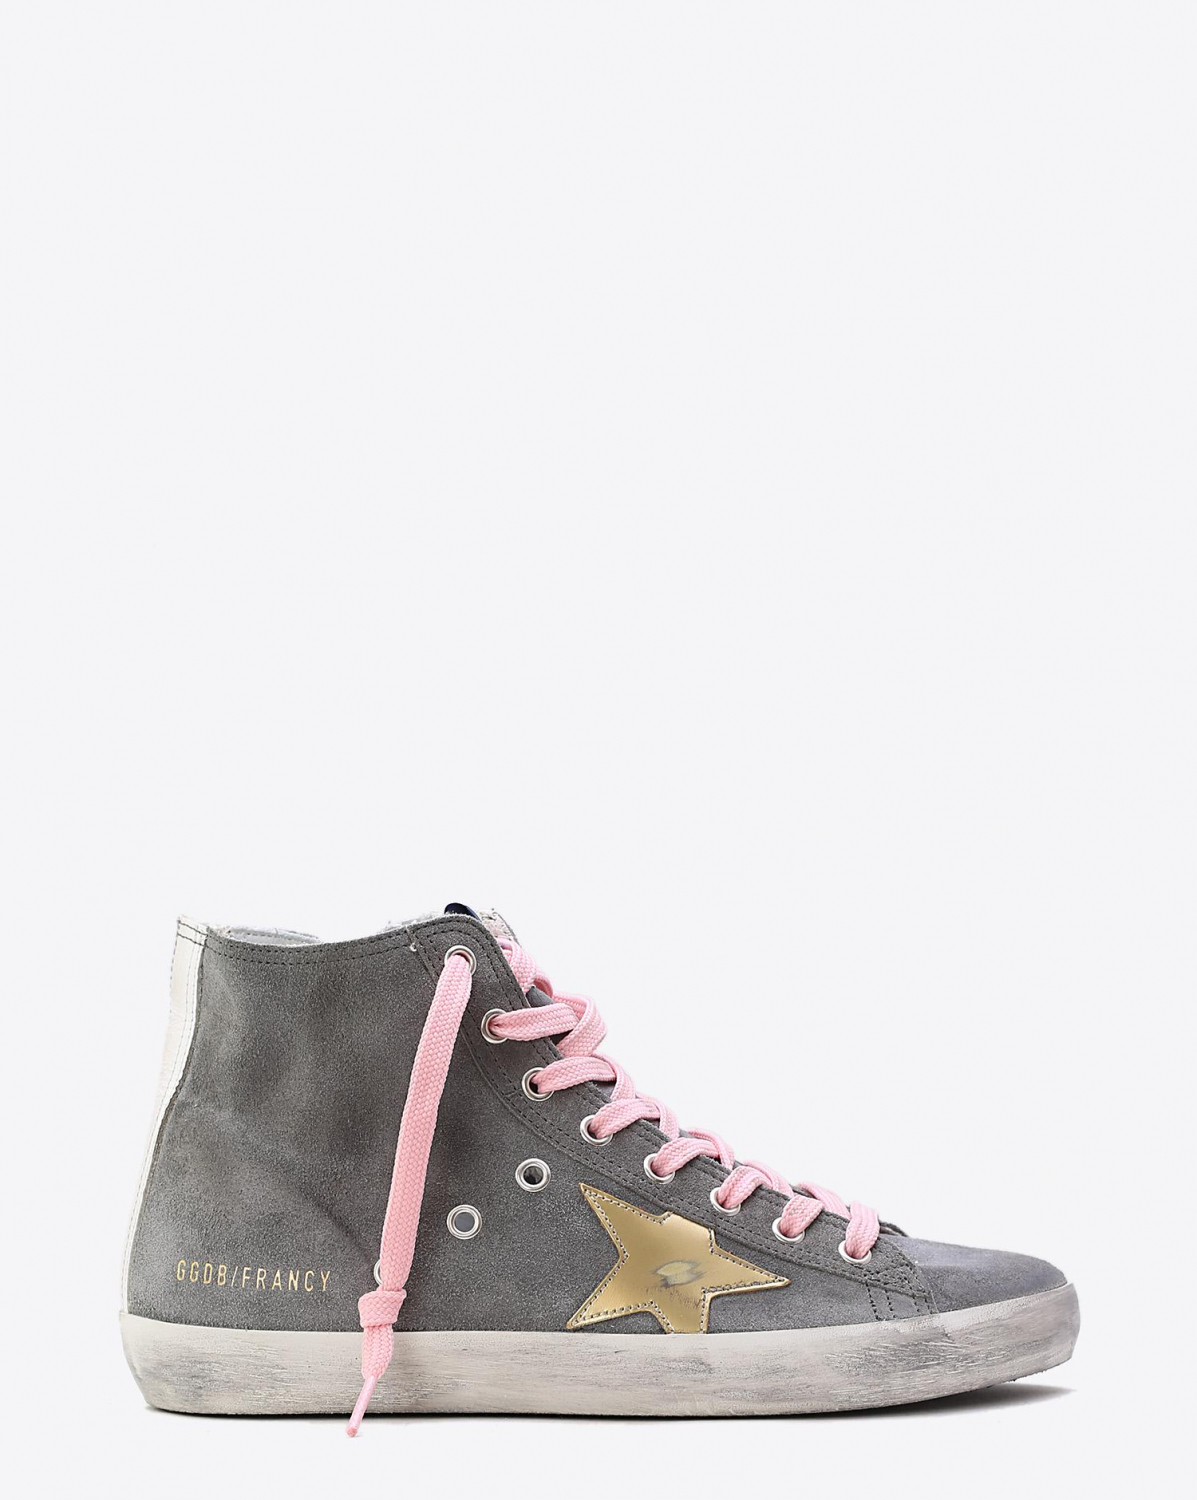 Golden Goose Woman Collection Sneakers Francy Grey Suede  Gold Star